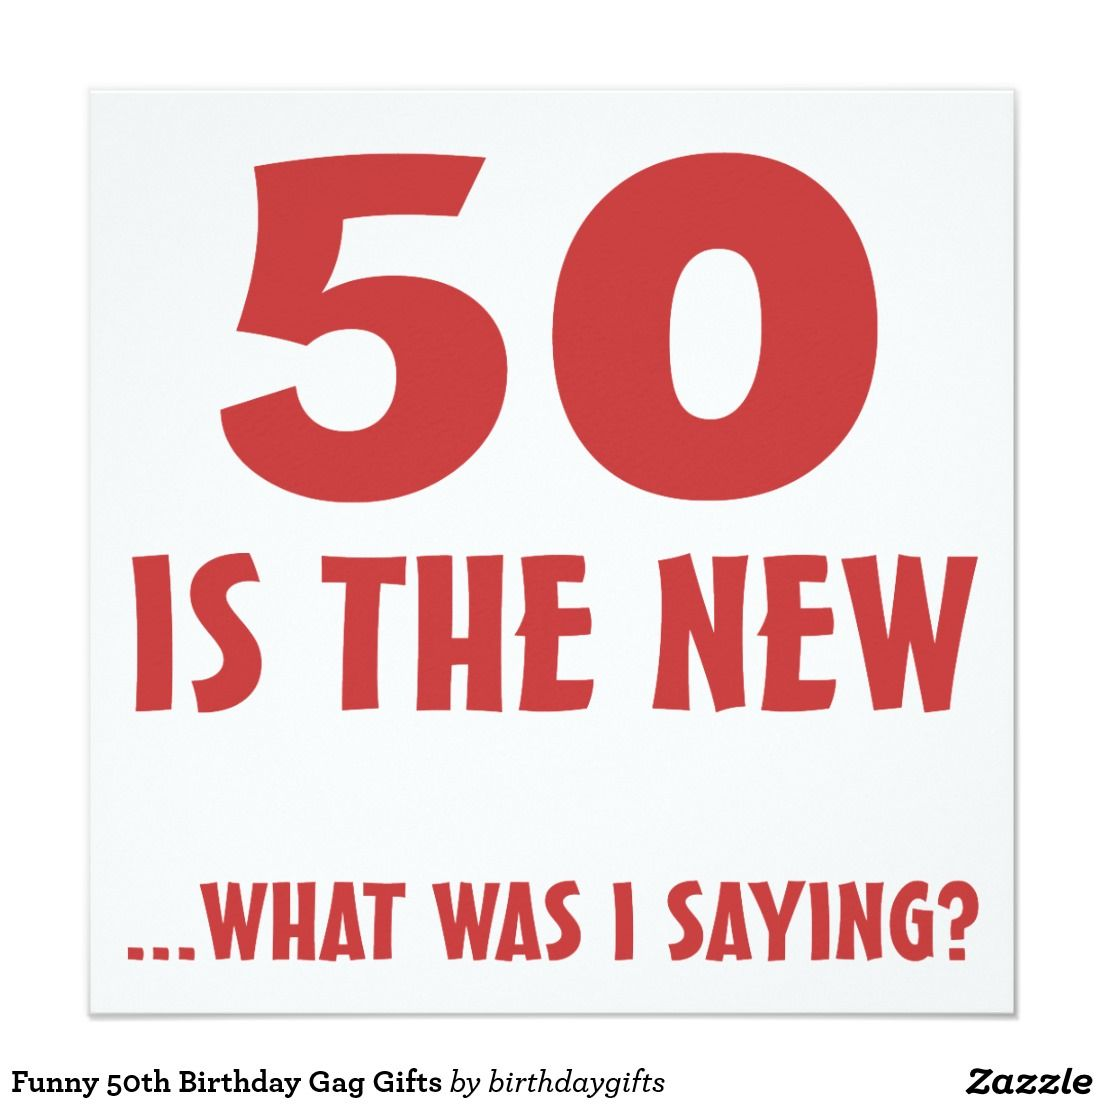 Funny 50th Birthday Gag Gifts Card | Birthday gag gifts, Gag gifts ...